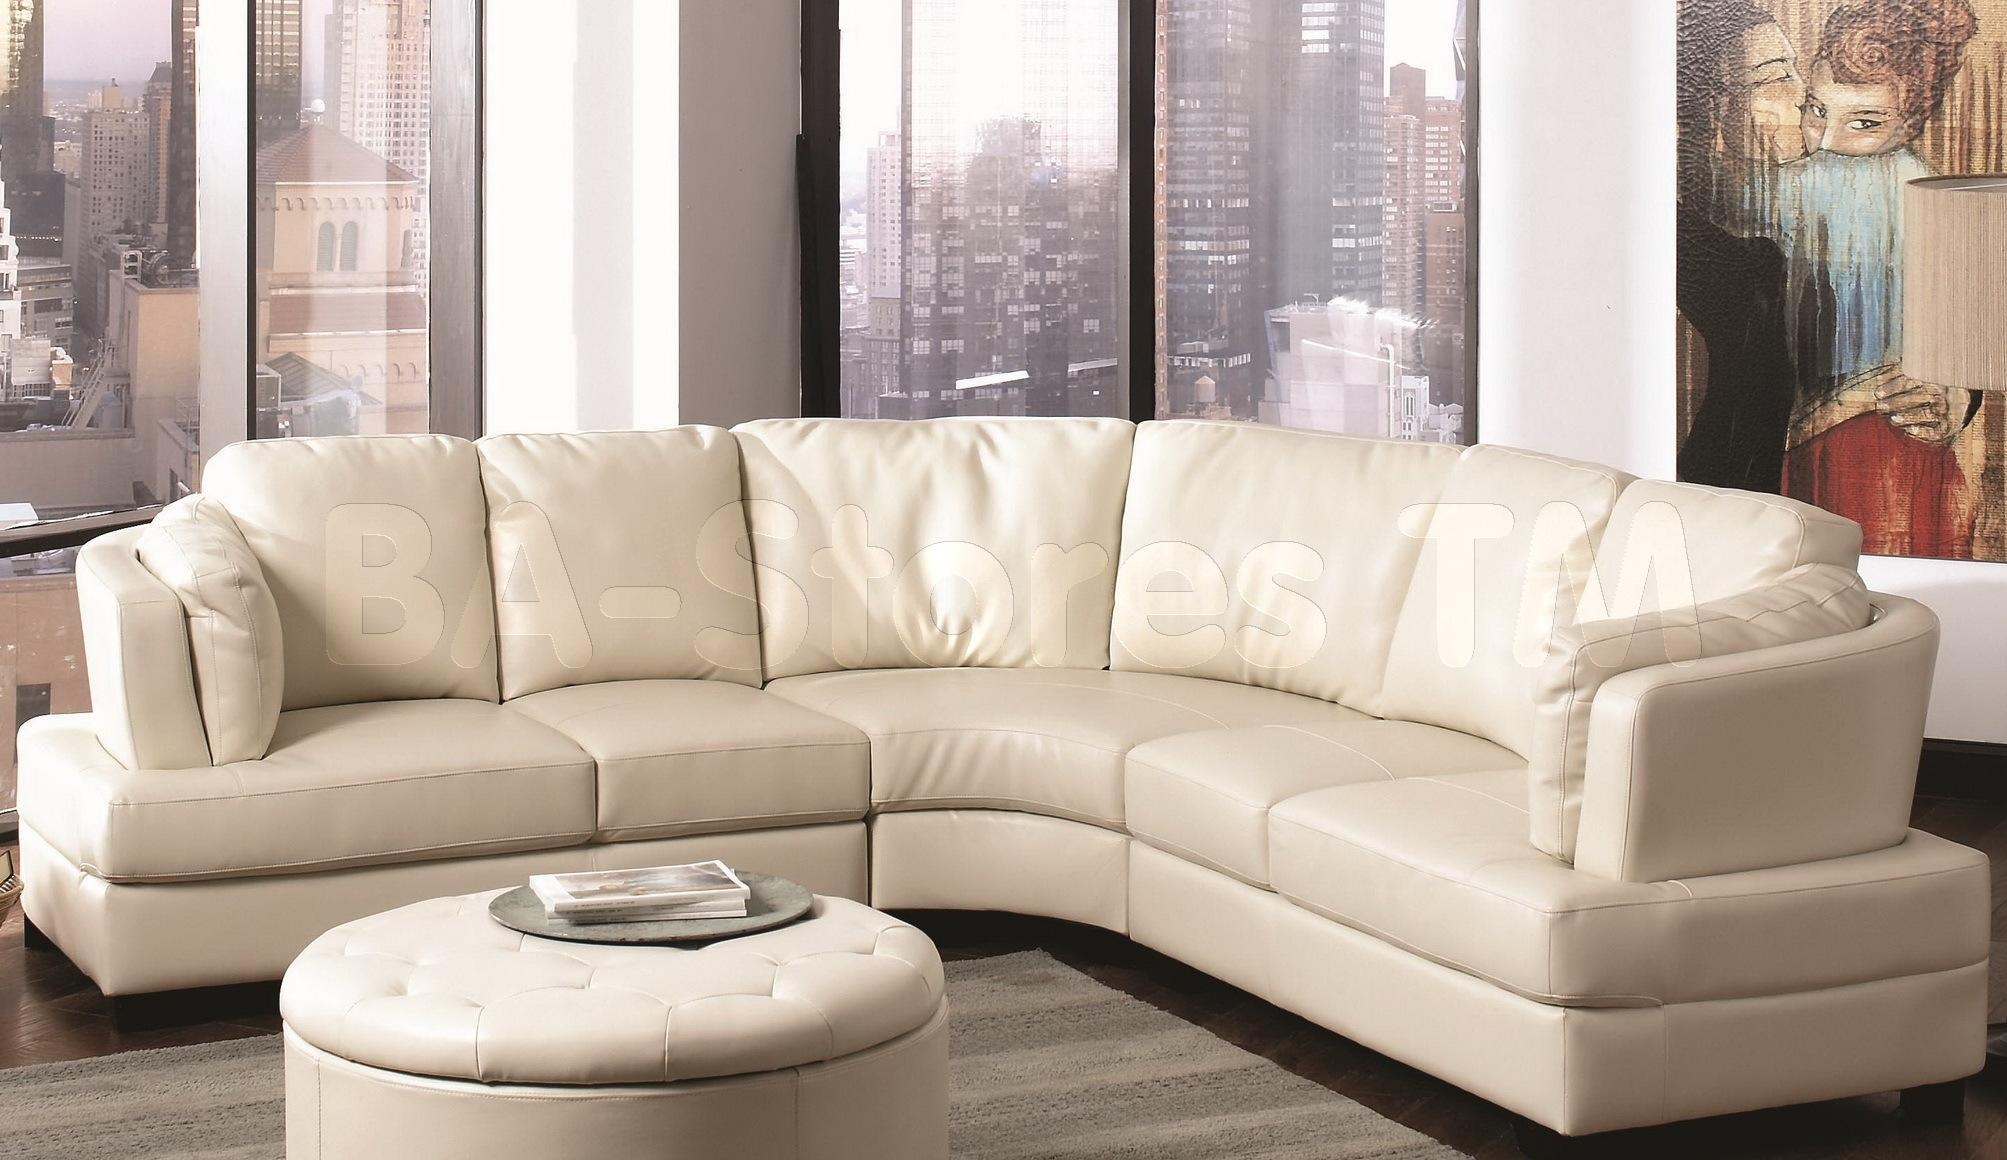 Curved Sectional Sofas At Macys | Tehranmix Decoration Within Macys Leather Sofas Sectionals (View 9 of 20)